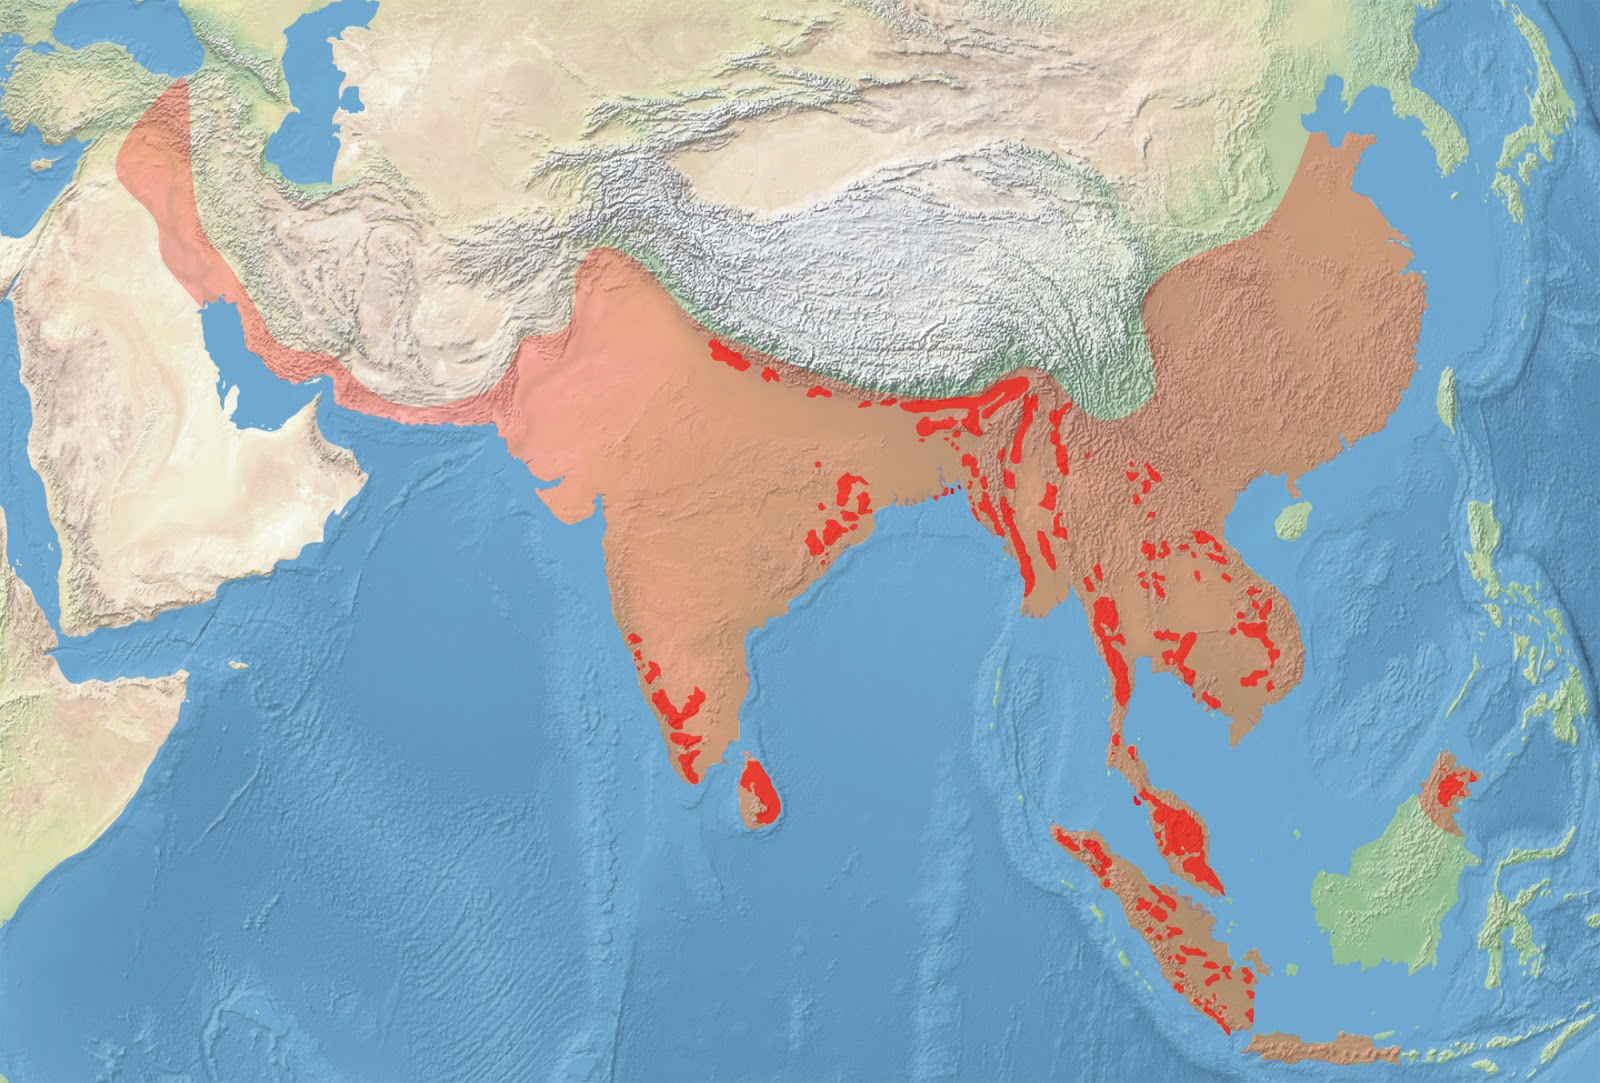 Modern (red) and Historical (pink) range of the Asian elephant